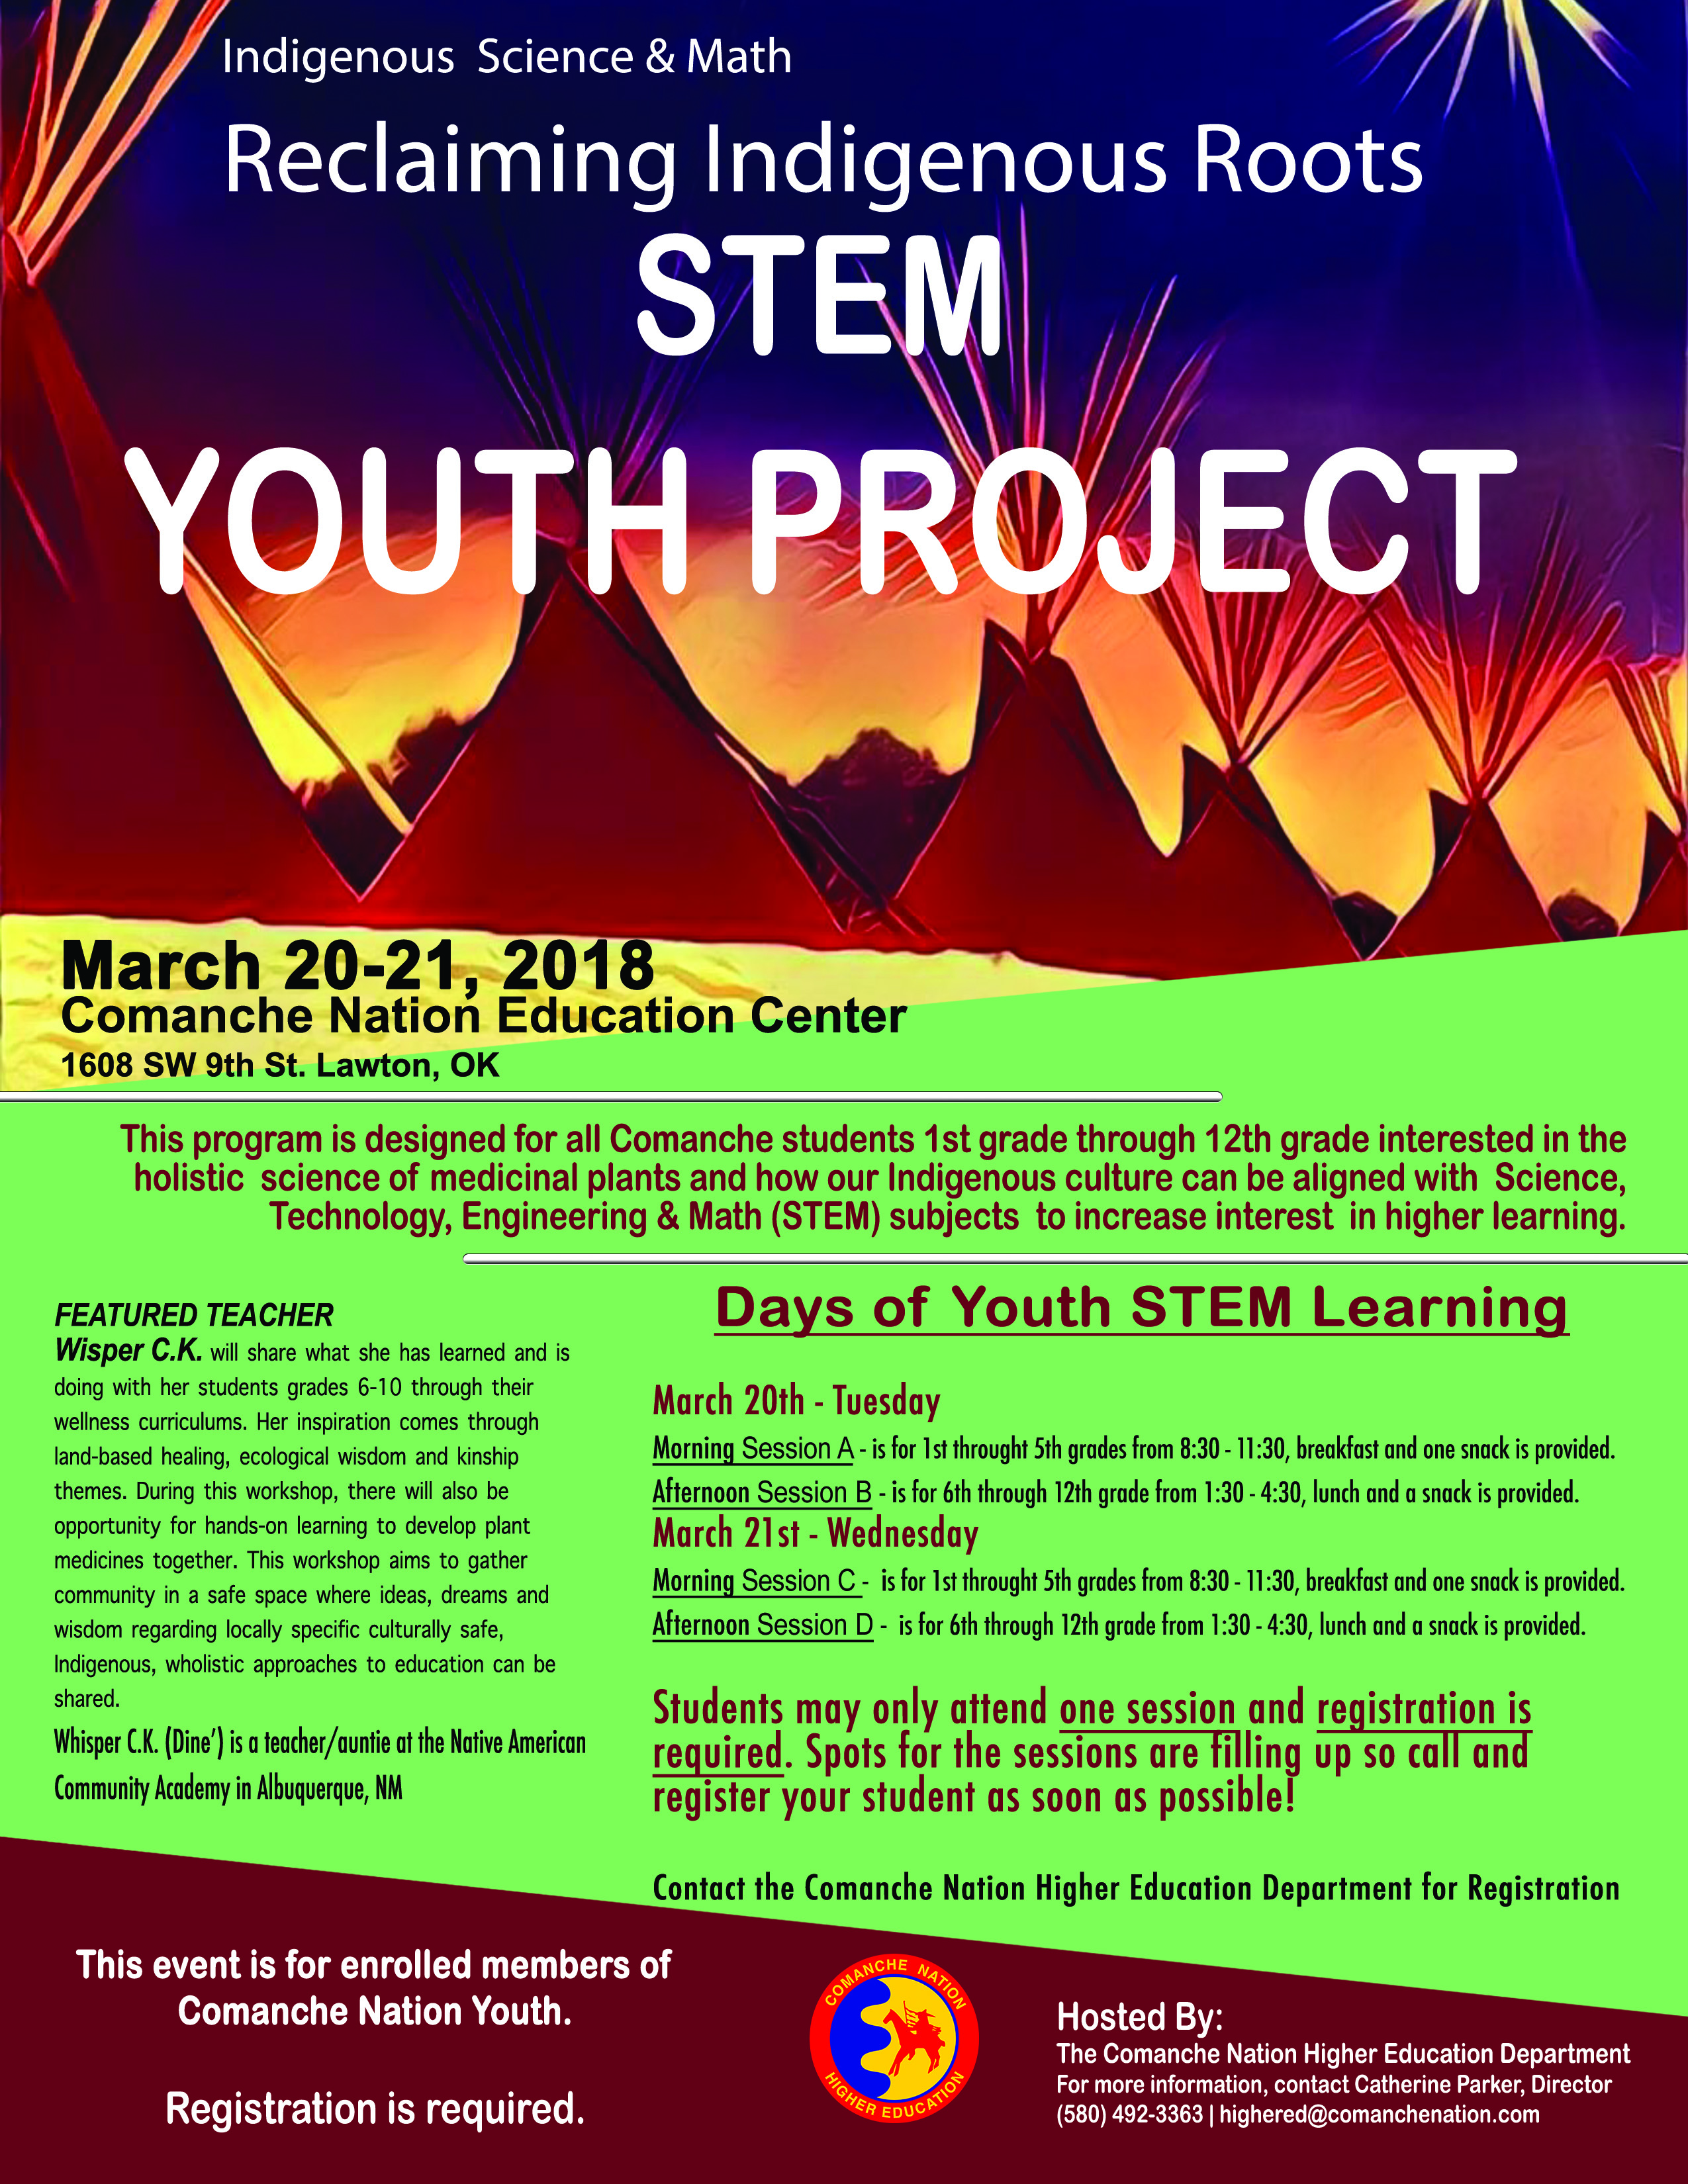 STEM Youth Project Registration